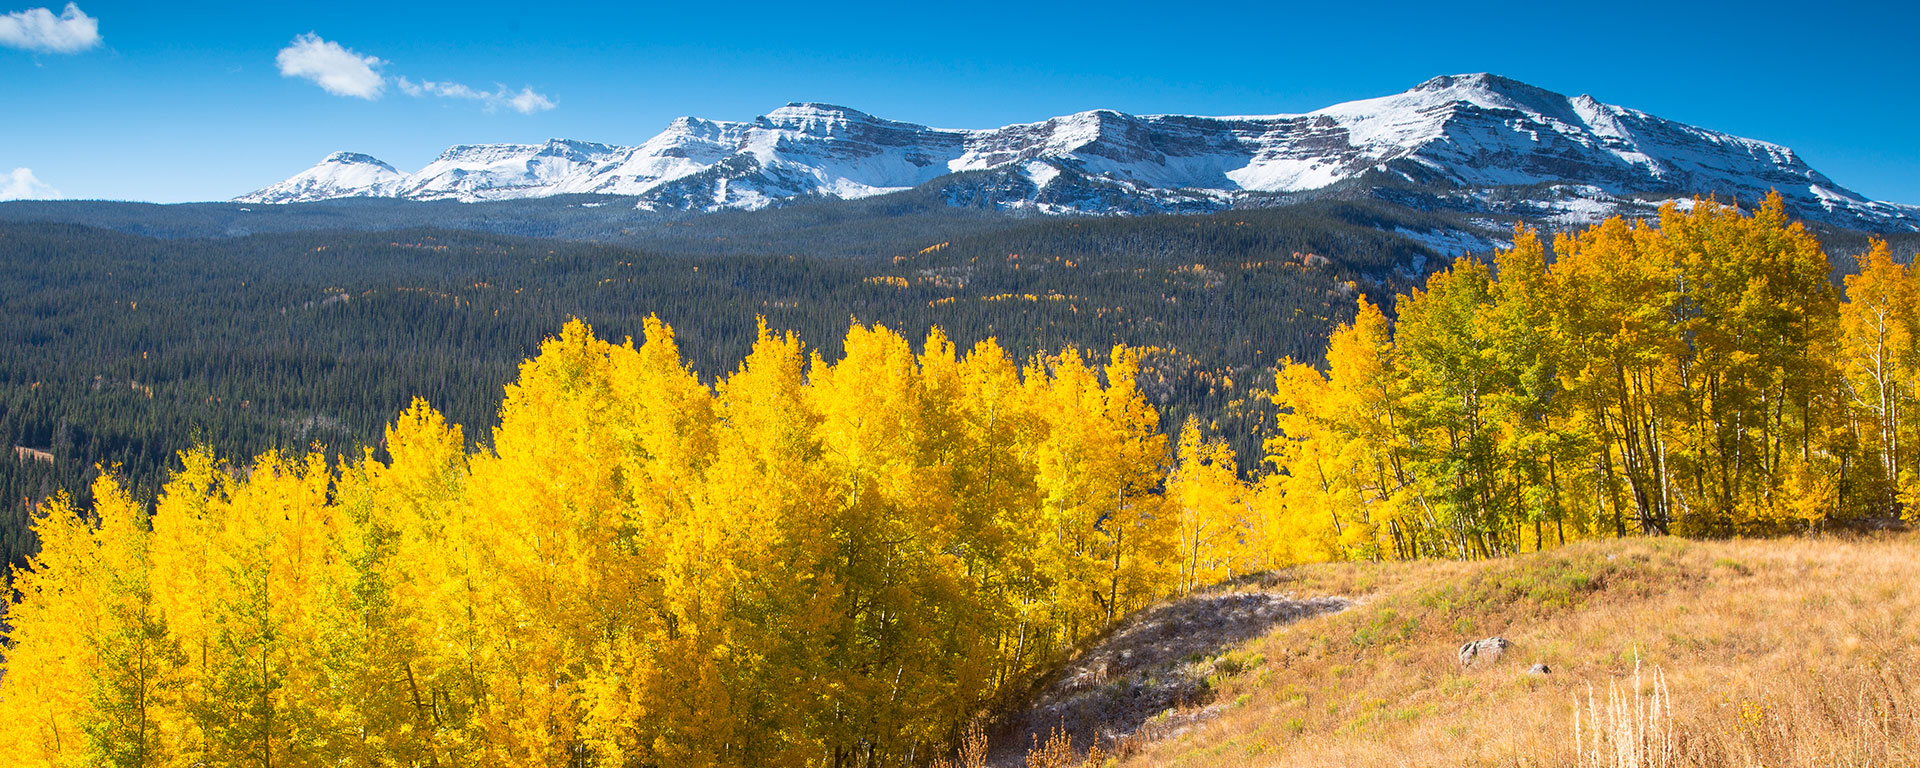 steamboat springs fall vacation packages in the colorado rocky mountains